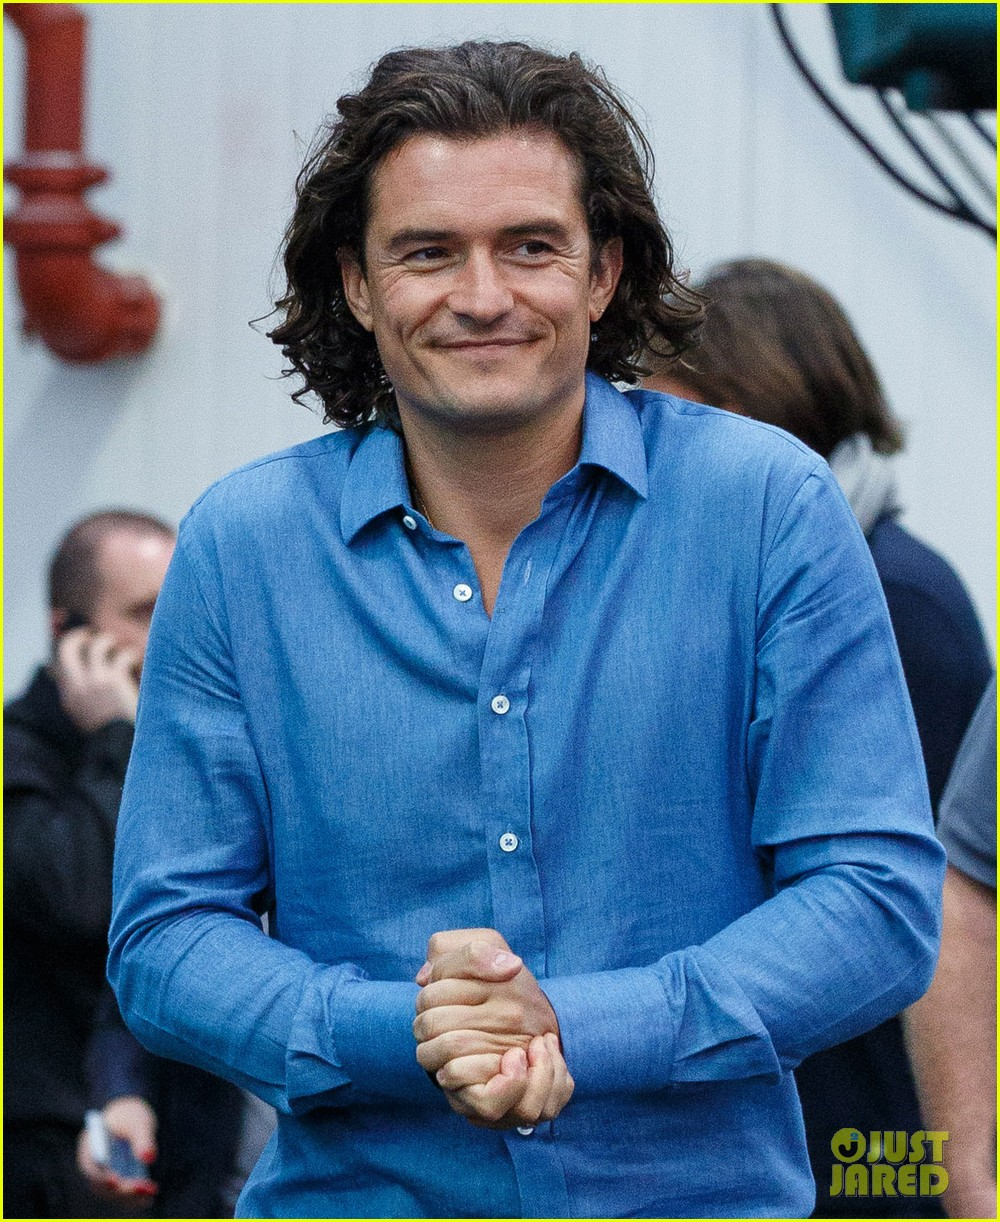 Orlando Bloom returns to the Pirates of the Caribbean 08/17/2015 30